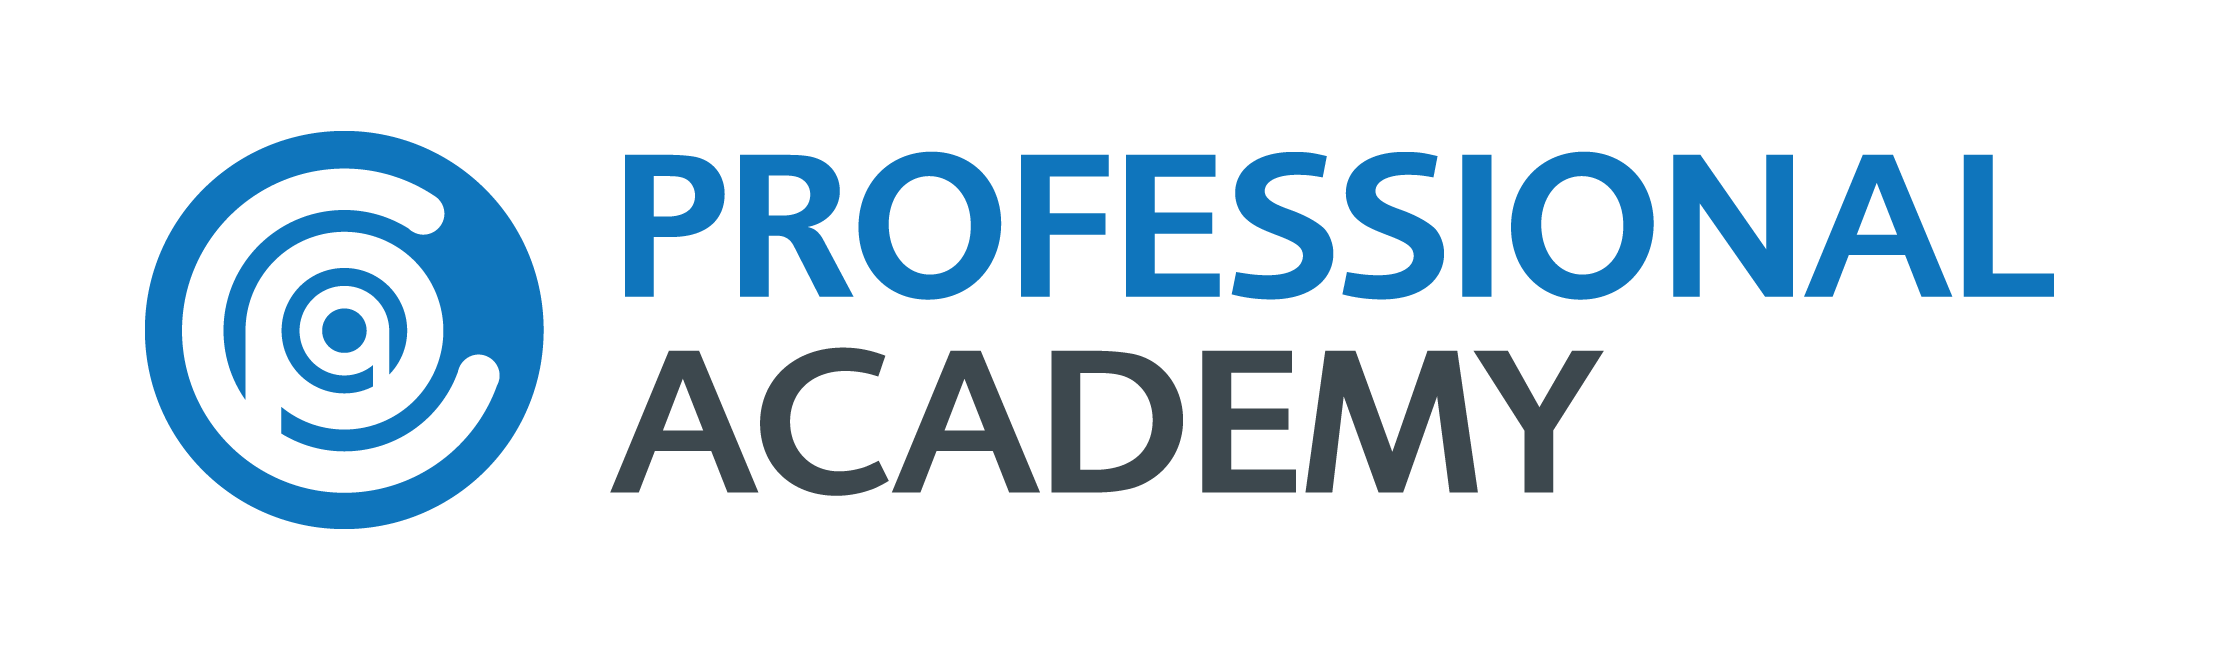 Professional Academy